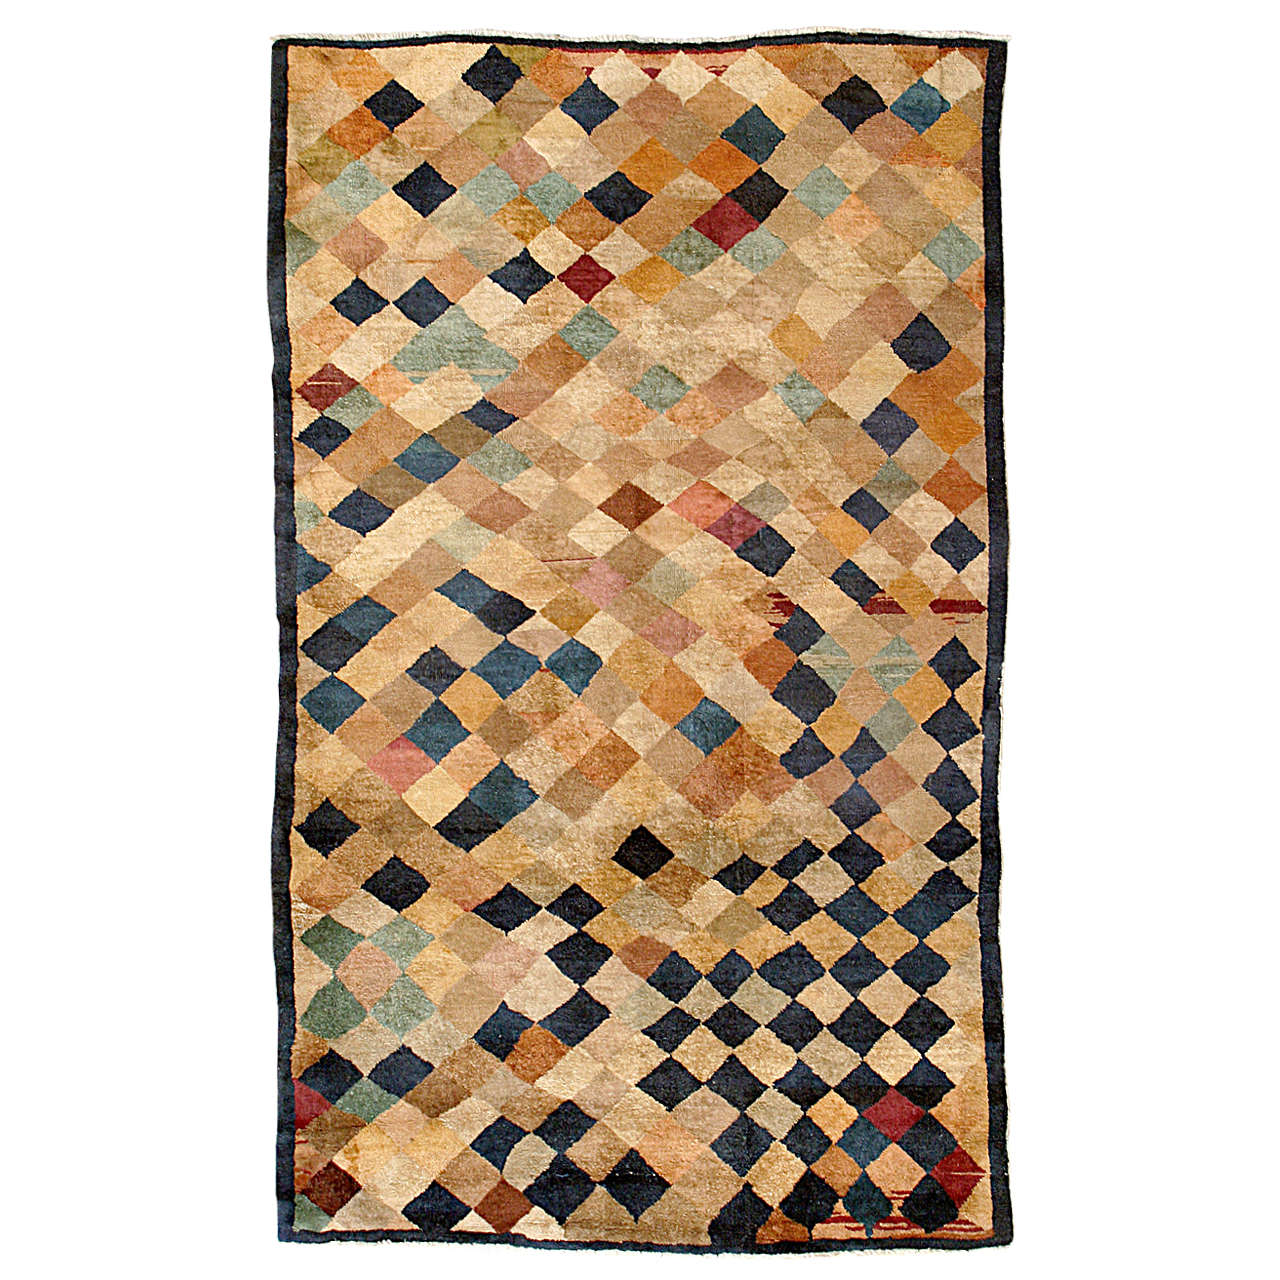 Carpet with Polychrome Lozenges 1